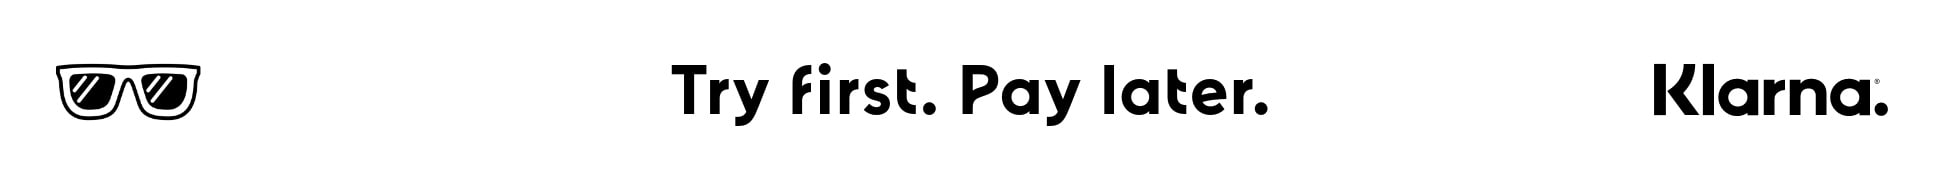 klarna - try first pay later